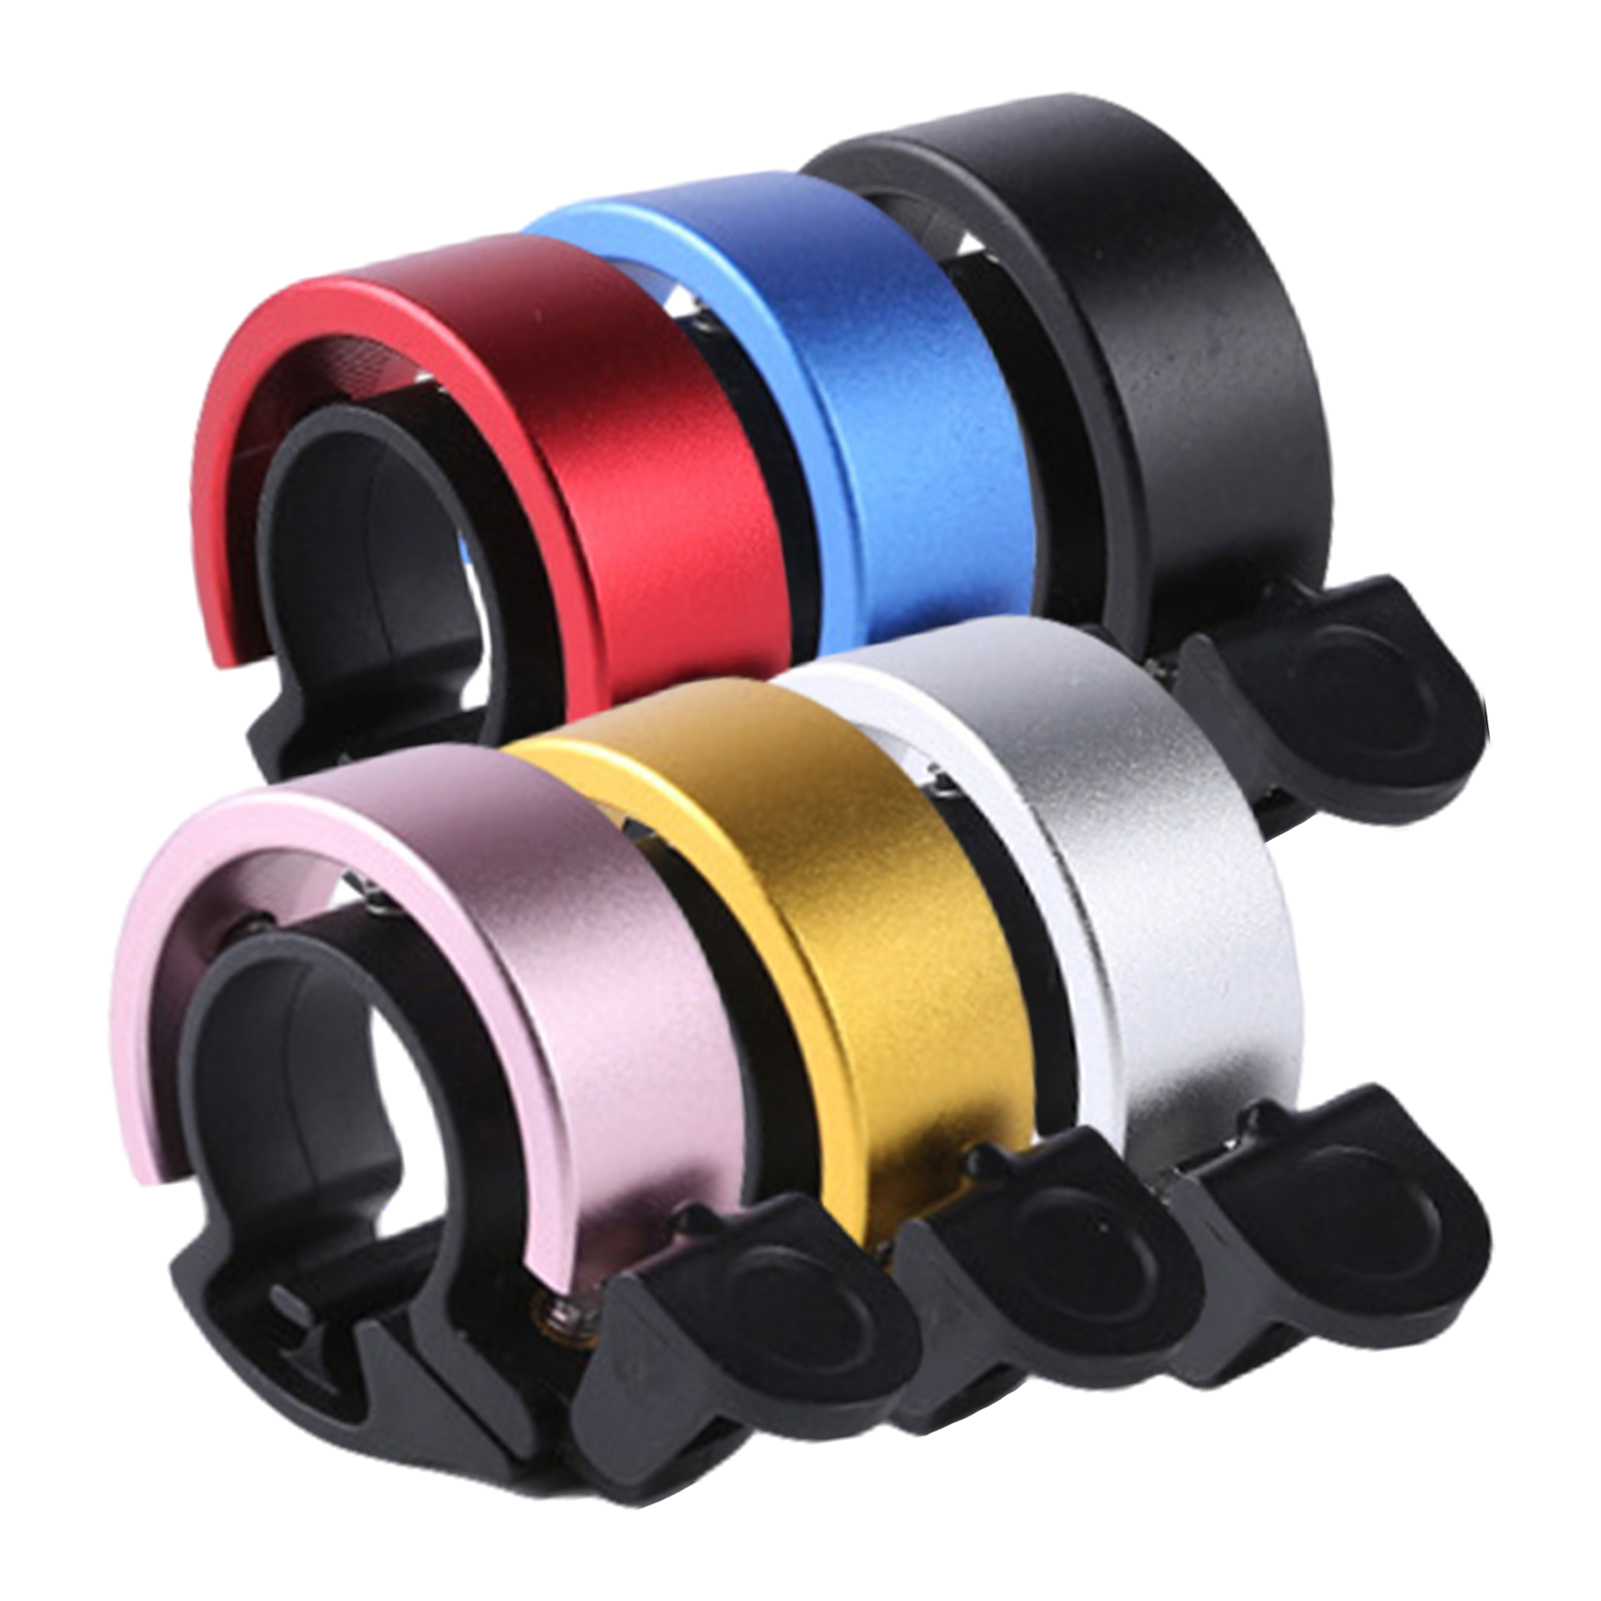 Bicycle-Horn Bike-Ring Clear Innovative Loud-Sound Aluminum-Alloy Unique Simple And O-Shaped